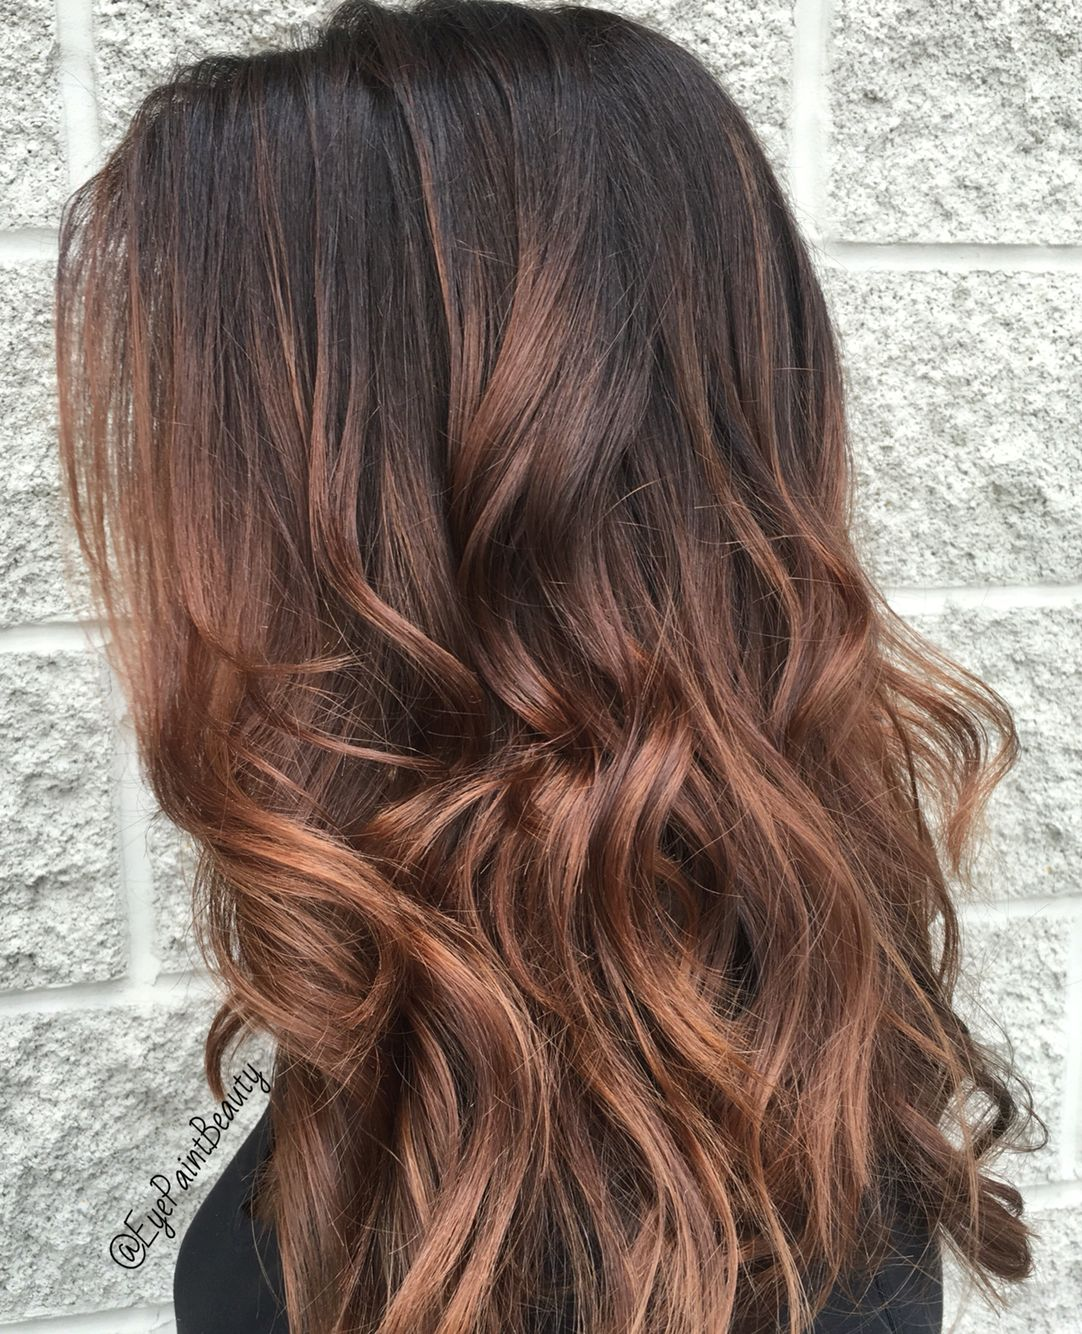 Hairstyle short ideas trending for, Whitney antms thompson launches a dating site